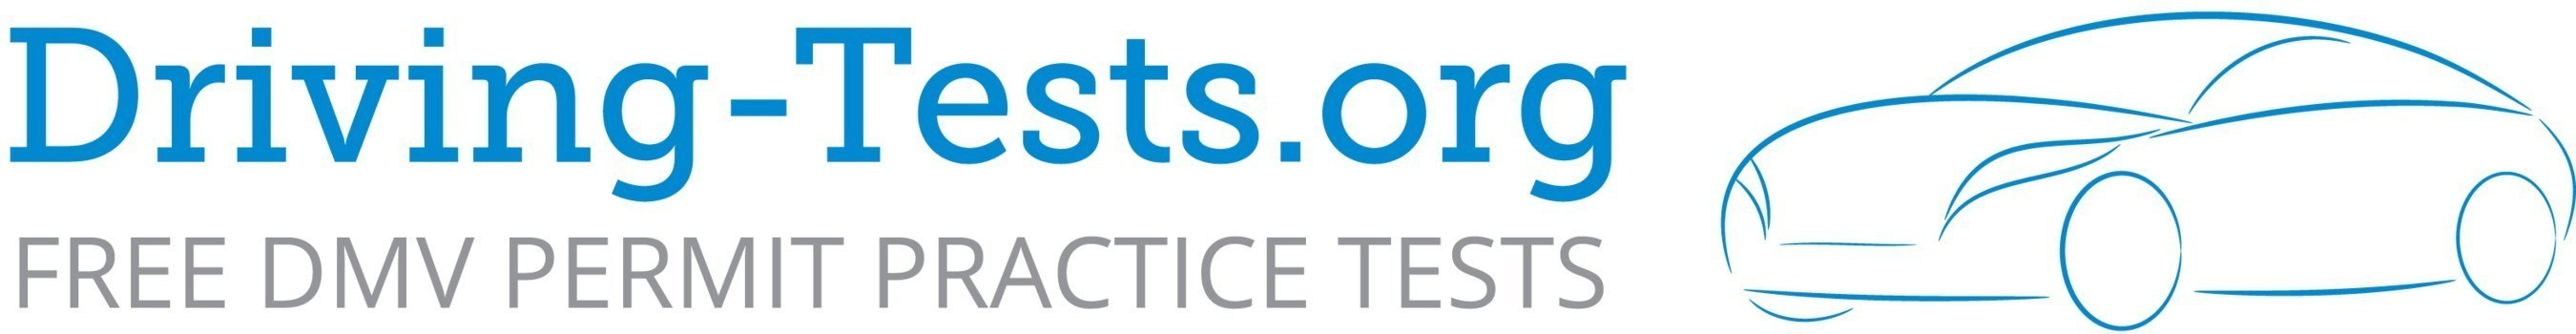 Driving-Tests.org offers free permit practice tests written by experts available to anyone who wants to study, along with online copies of official state or province study guides.